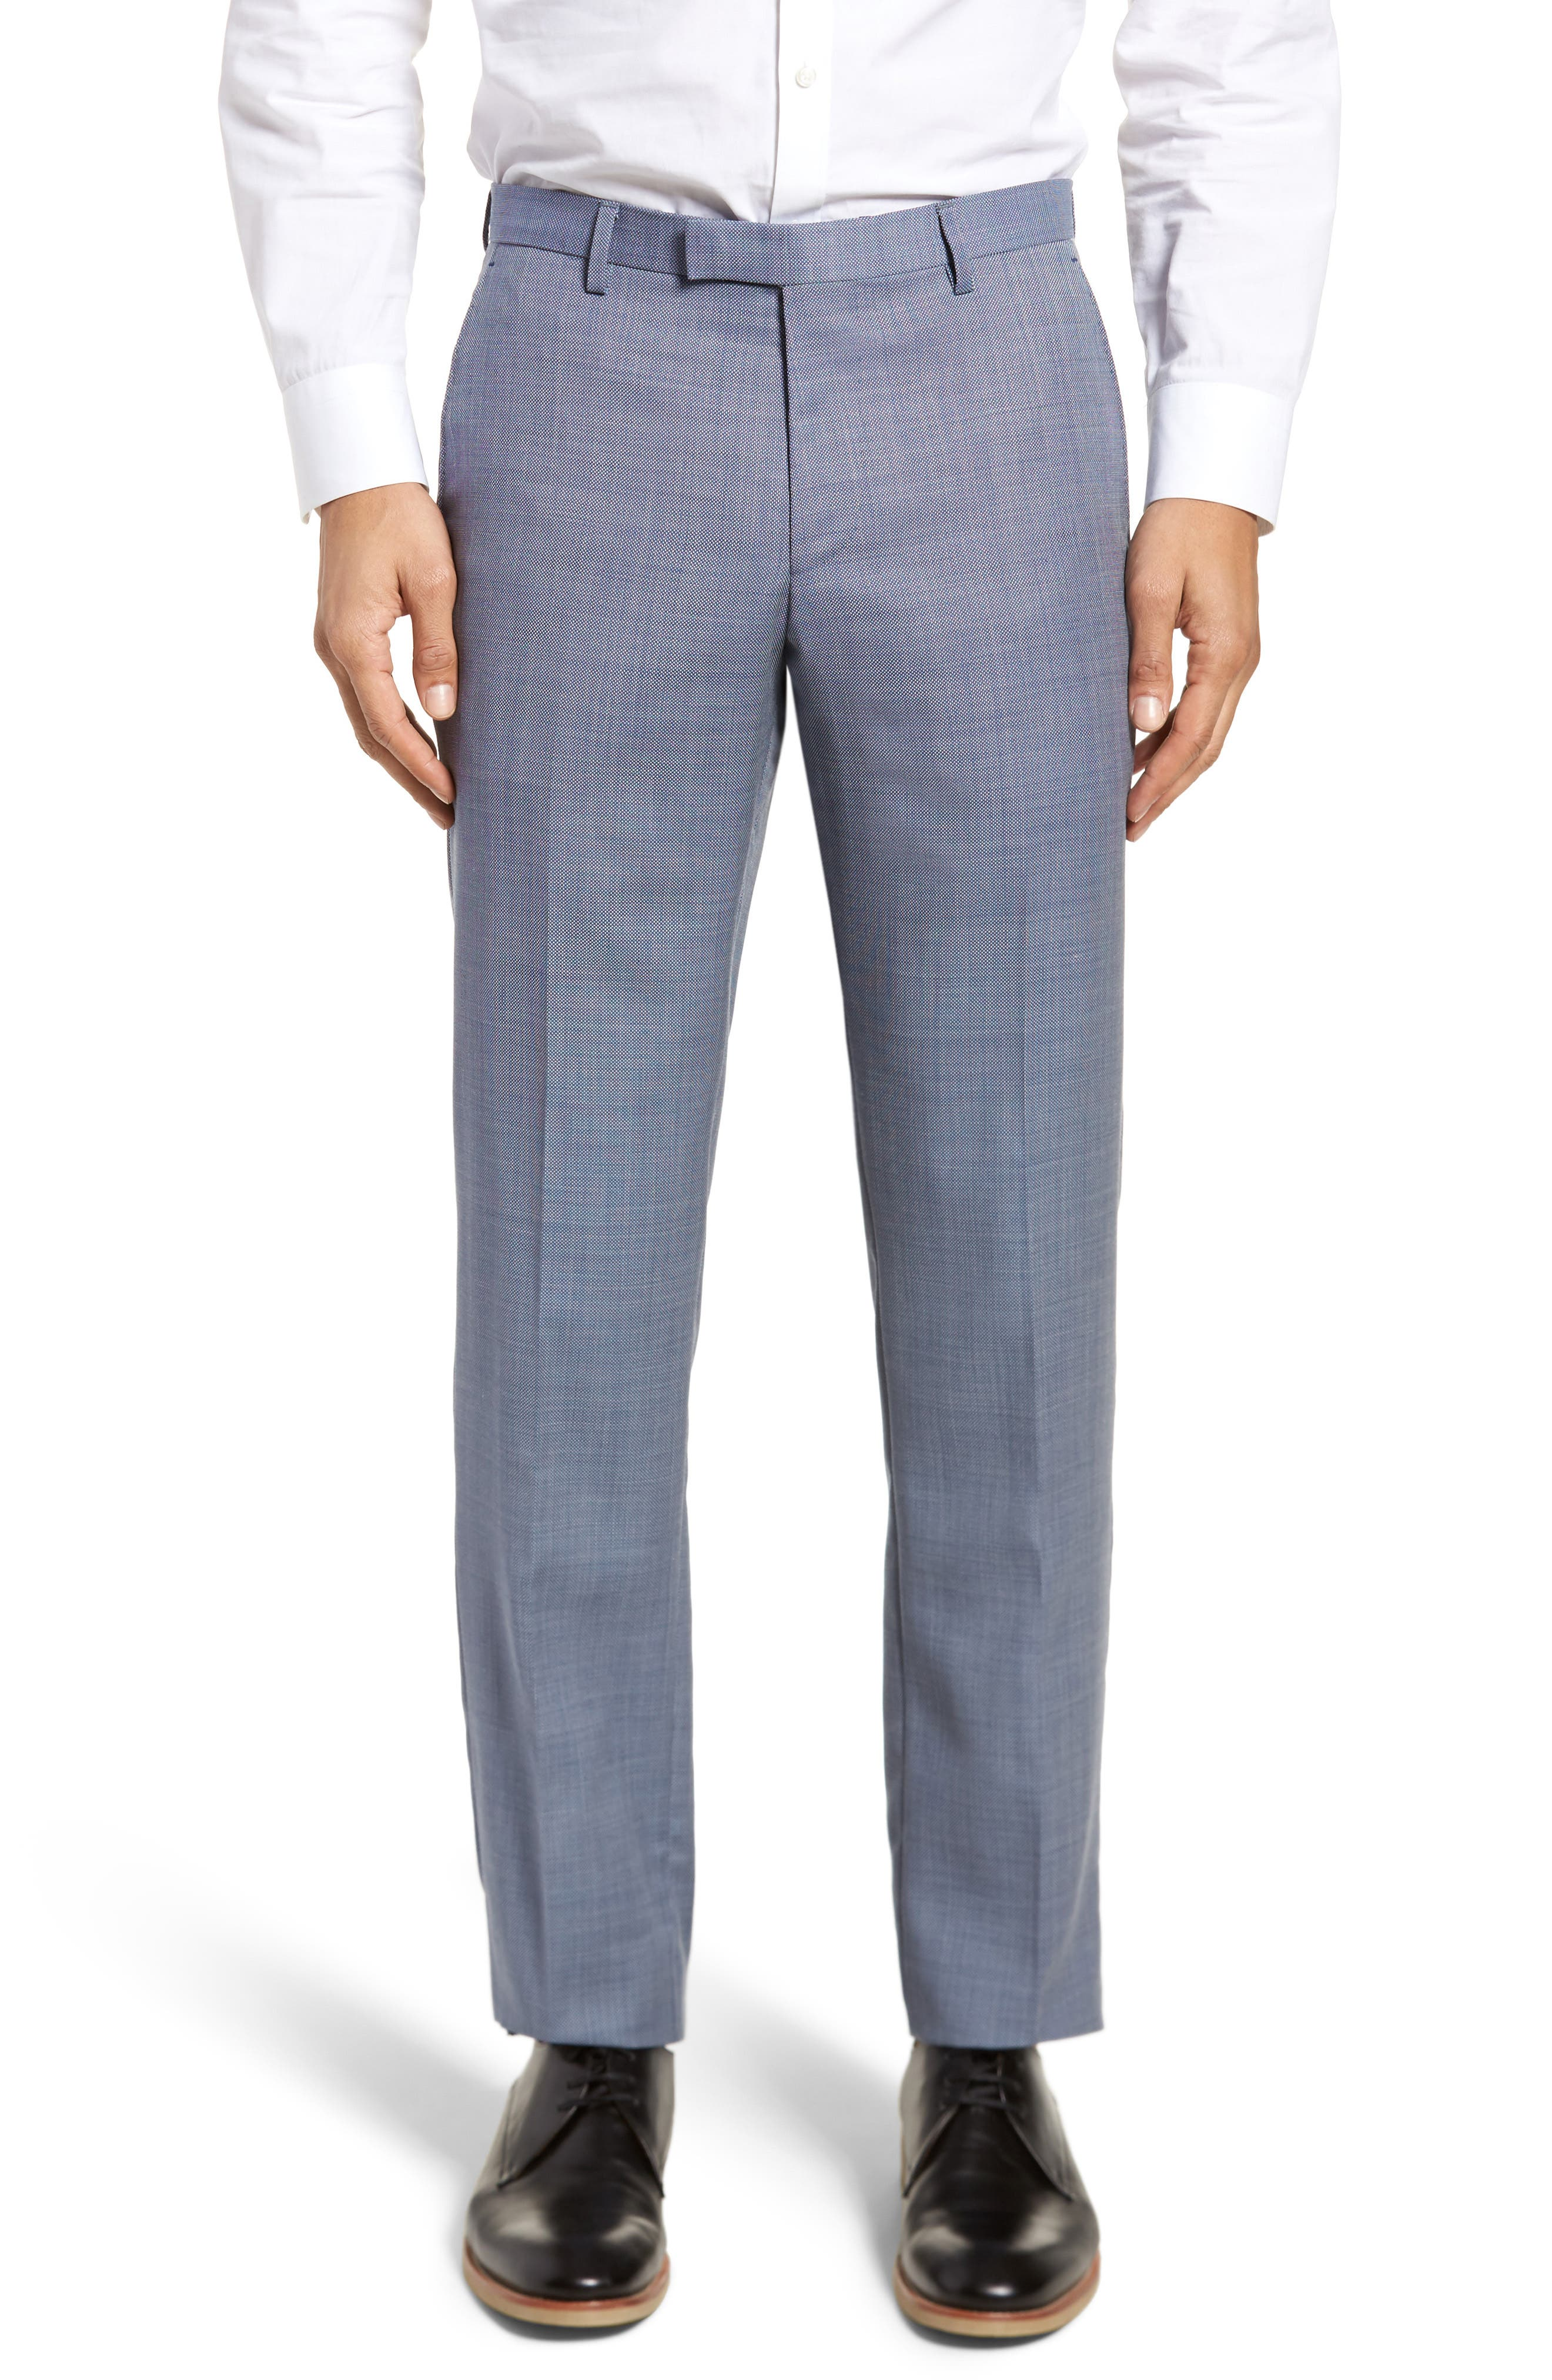 Leenon Flat Front Regular Fit Solid Wool Trousers,                             Main thumbnail 1, color,                             Light/ Pastel Blue